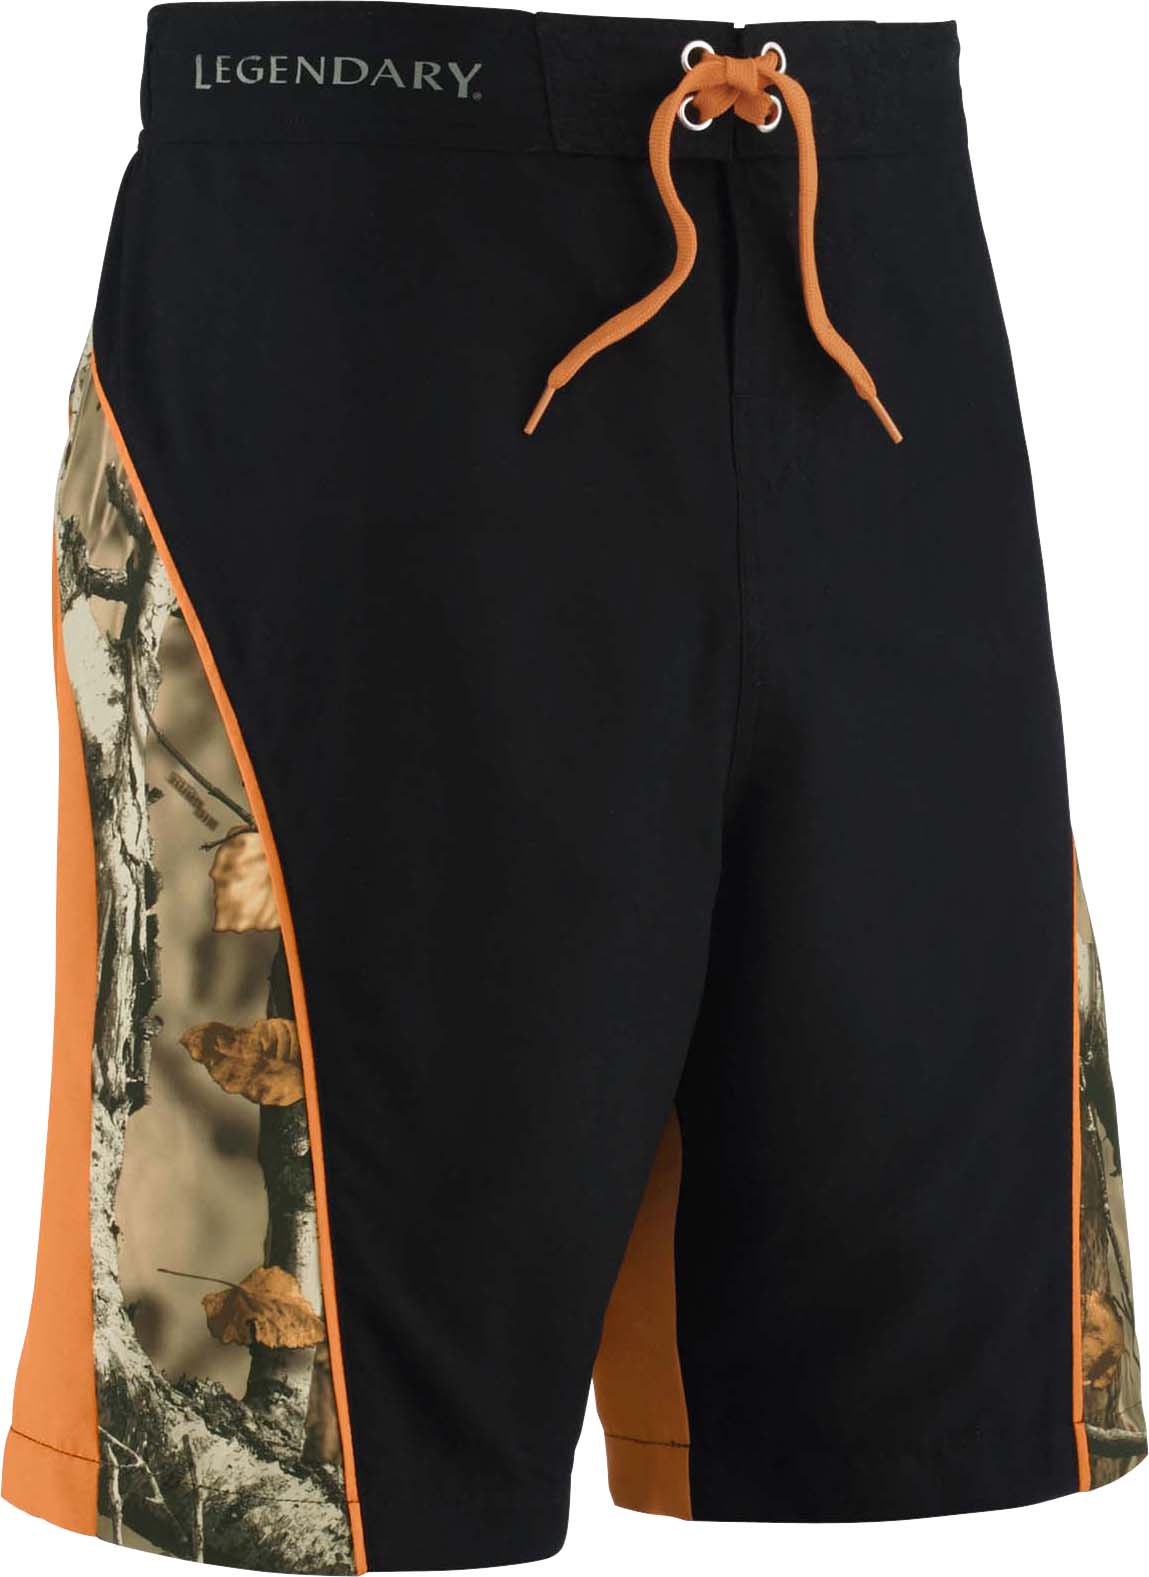 43dd11ea57 ... Men's Shoreline Big Game Camo Swim Trunks ...